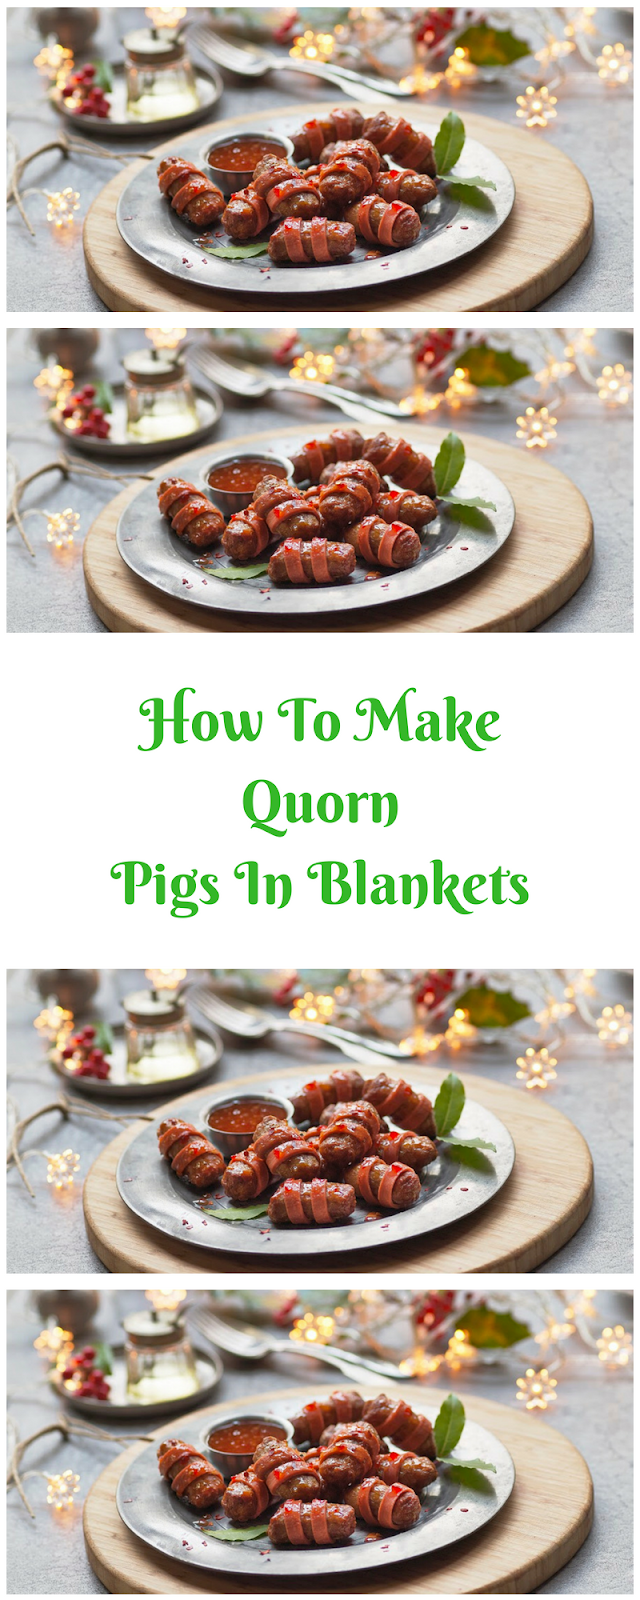 How To Make Quorn Pigs In Blankets